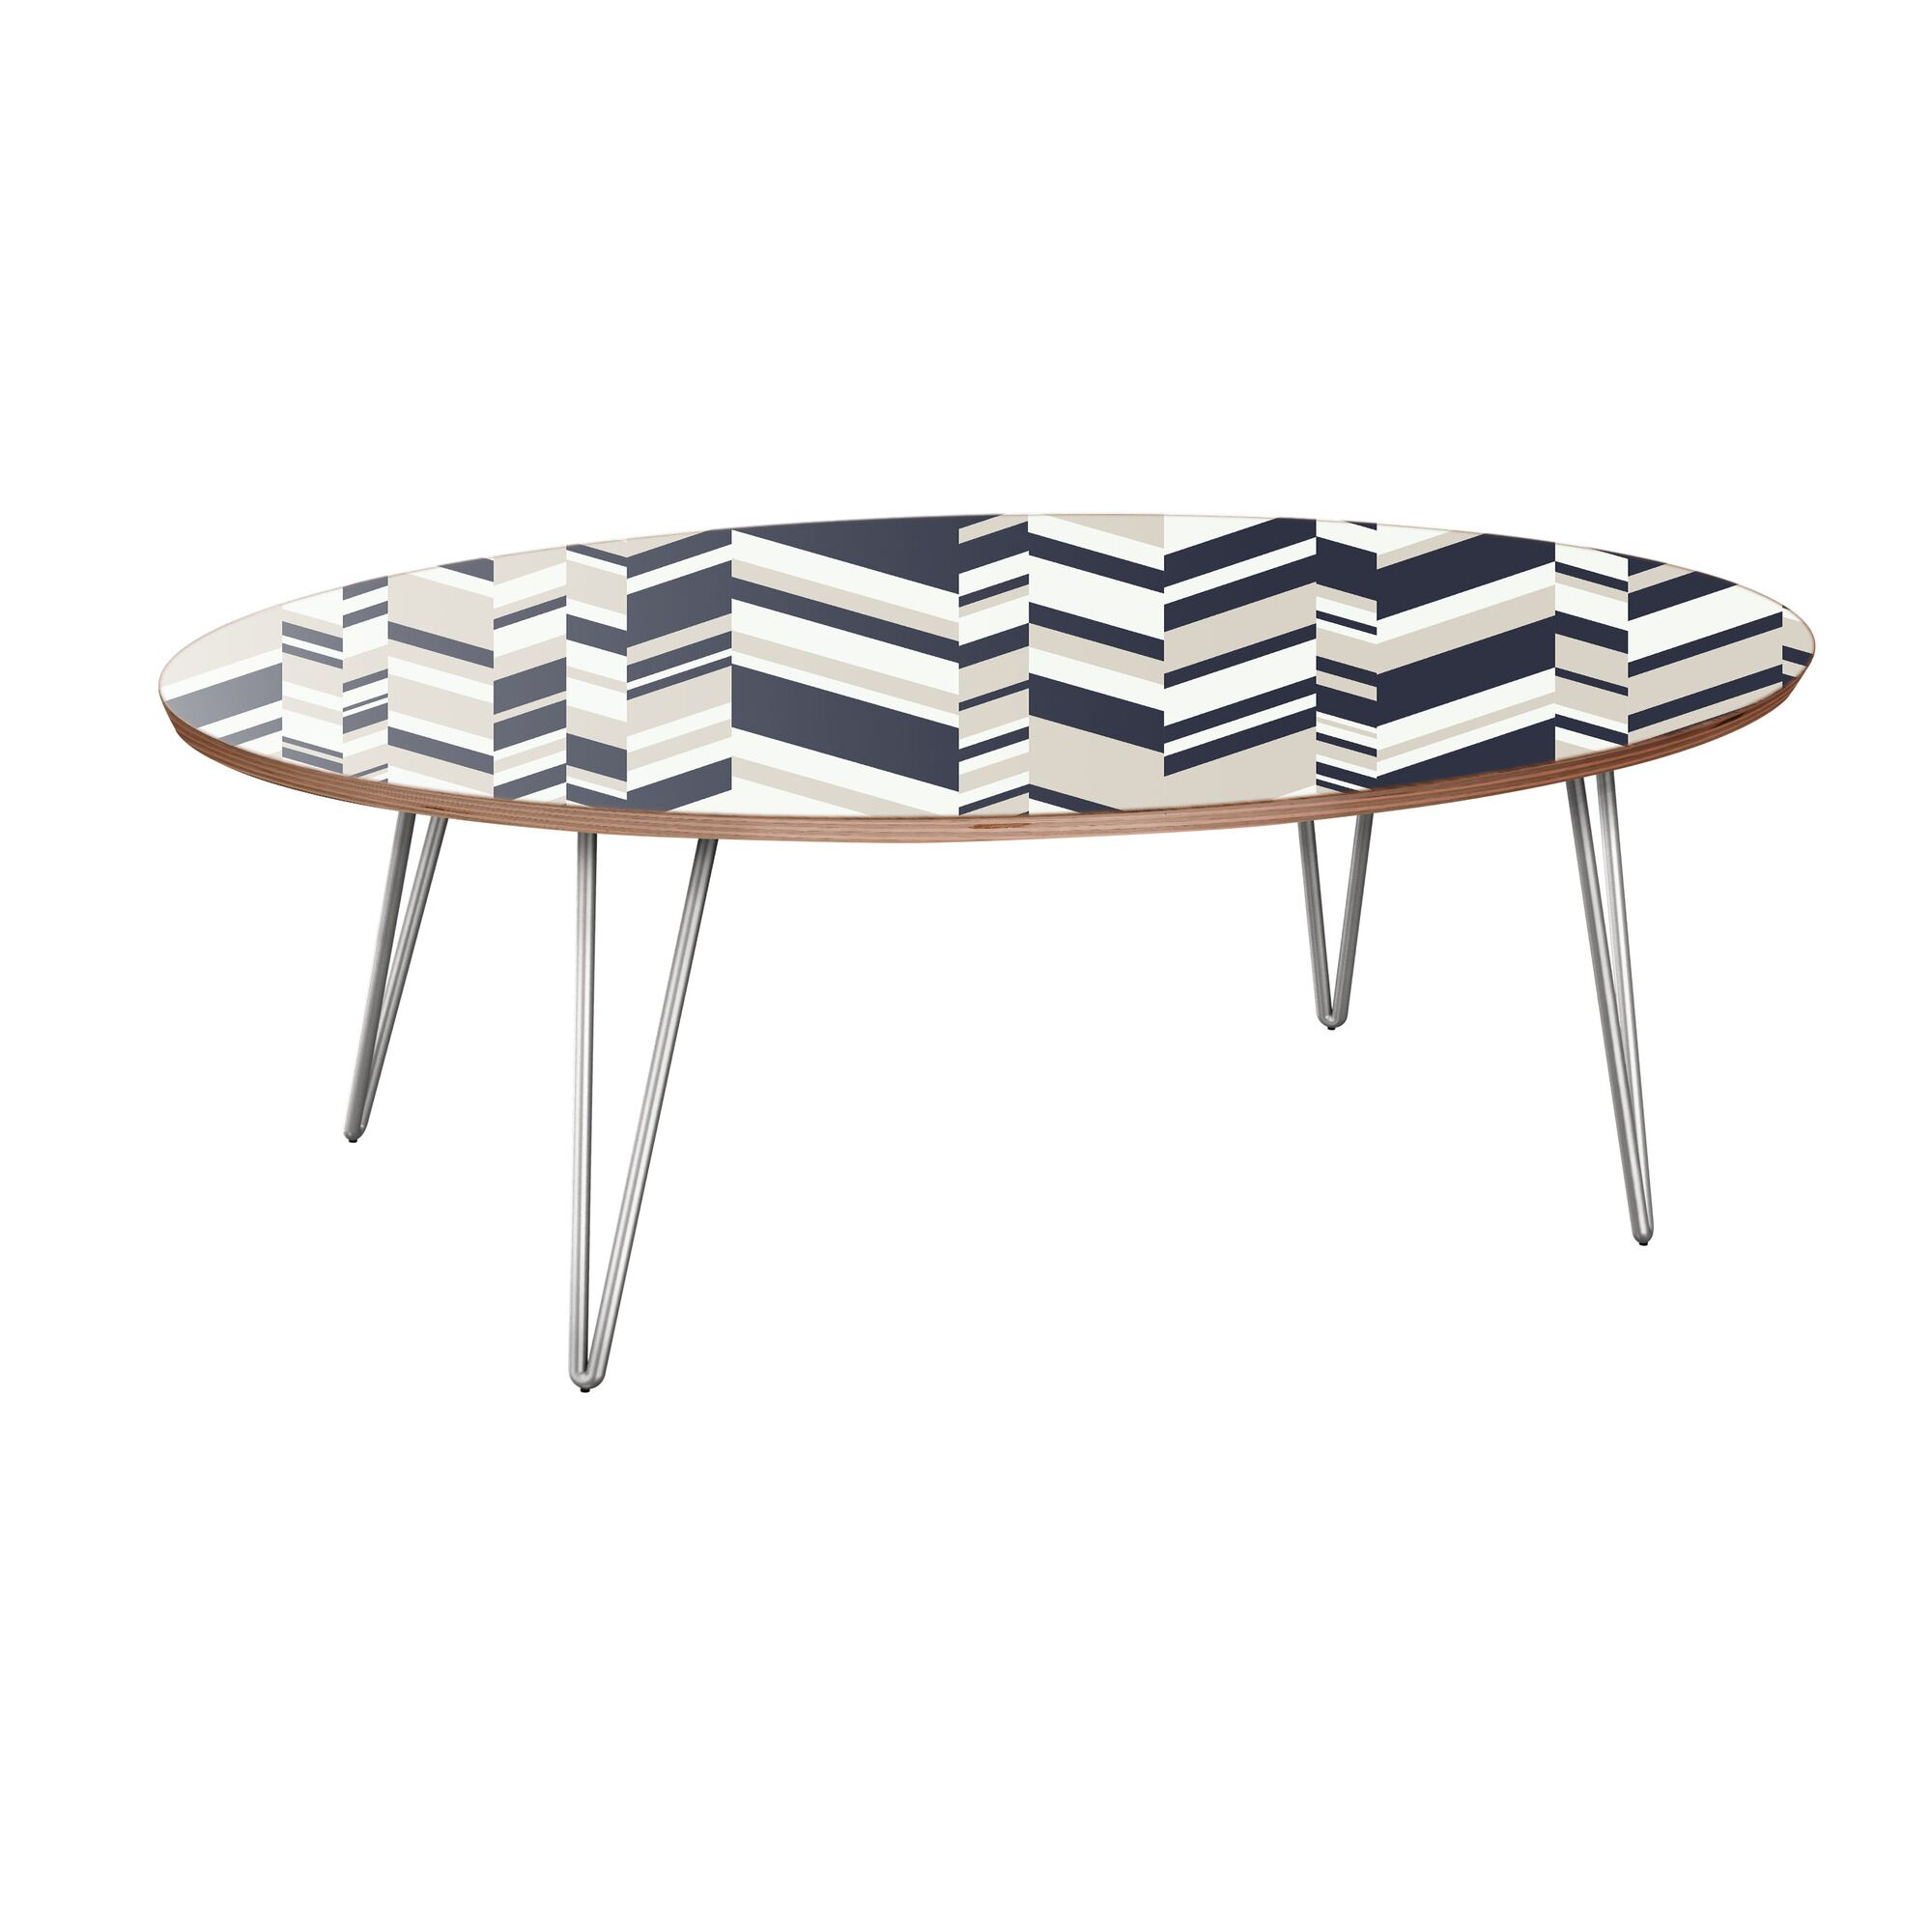 Kittrell Coffee Table Table Base Color: Chrome, Table Top Color: Walnut